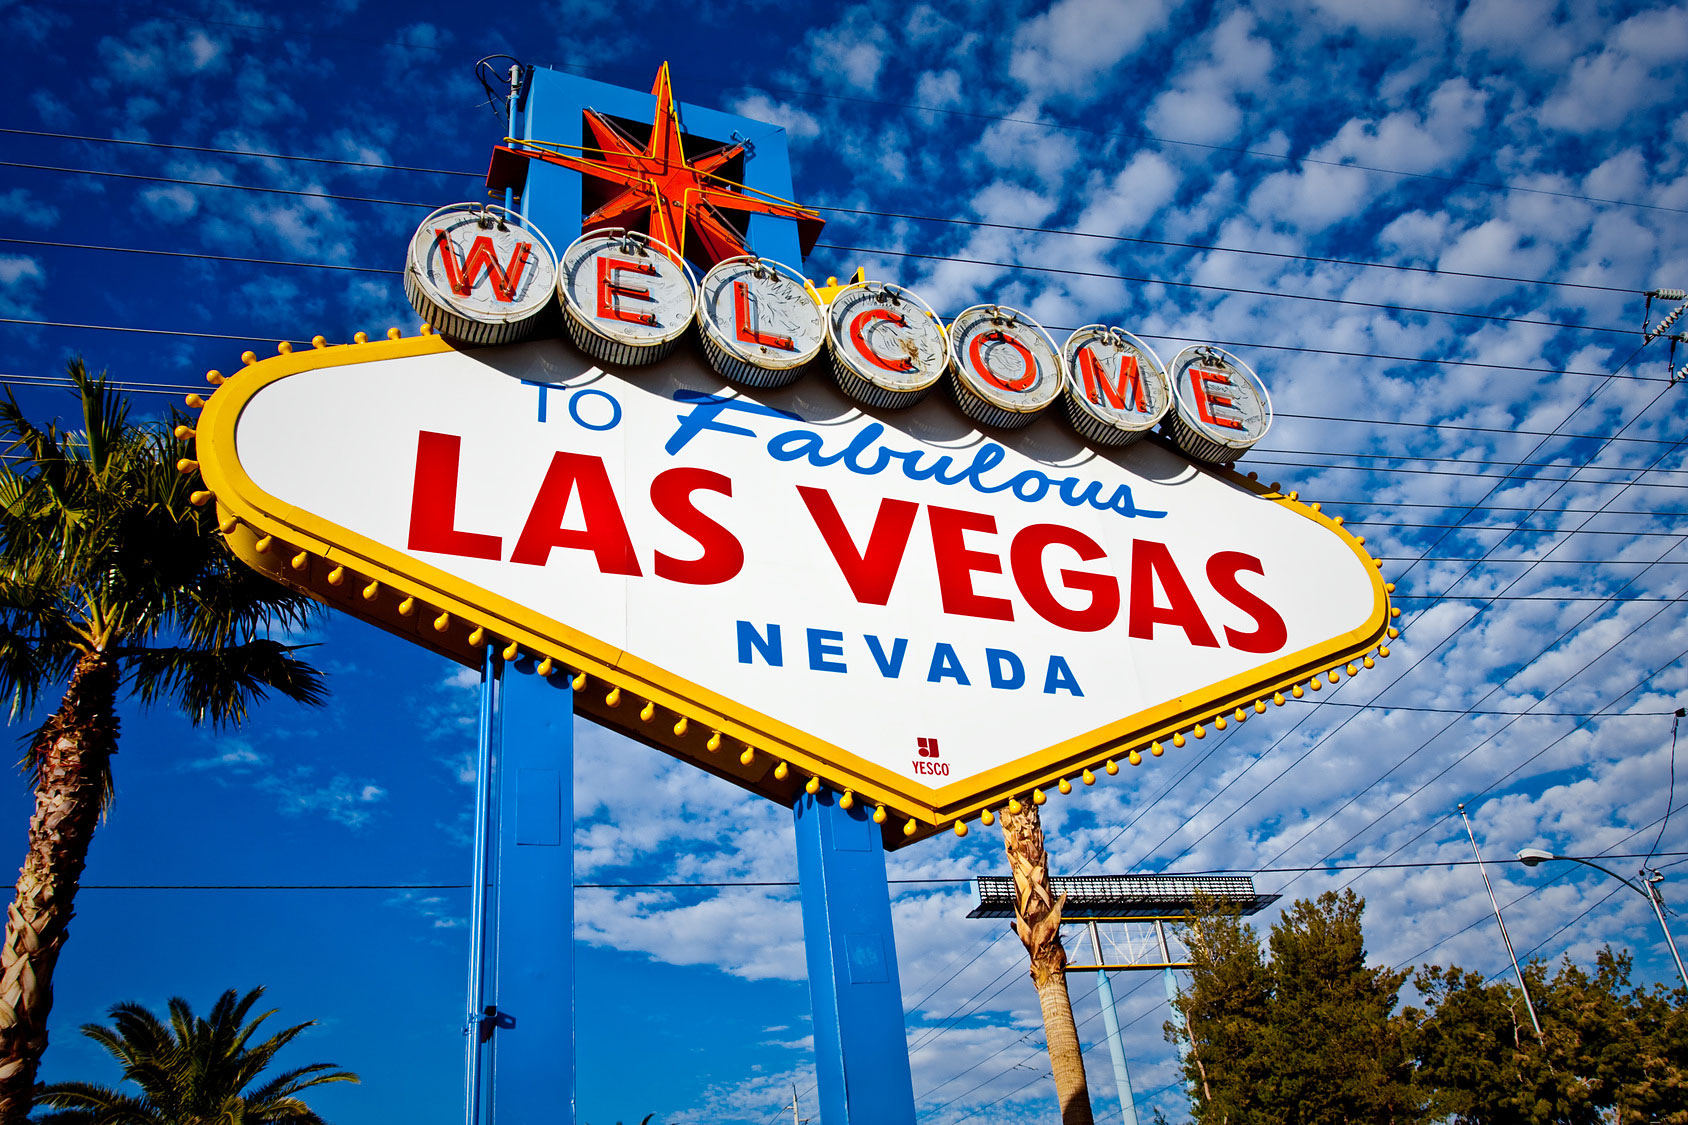 https://anysizedealsweek.com/wp-content/uploads/2020/01/Welcome-to-Las-Vegas.jpg